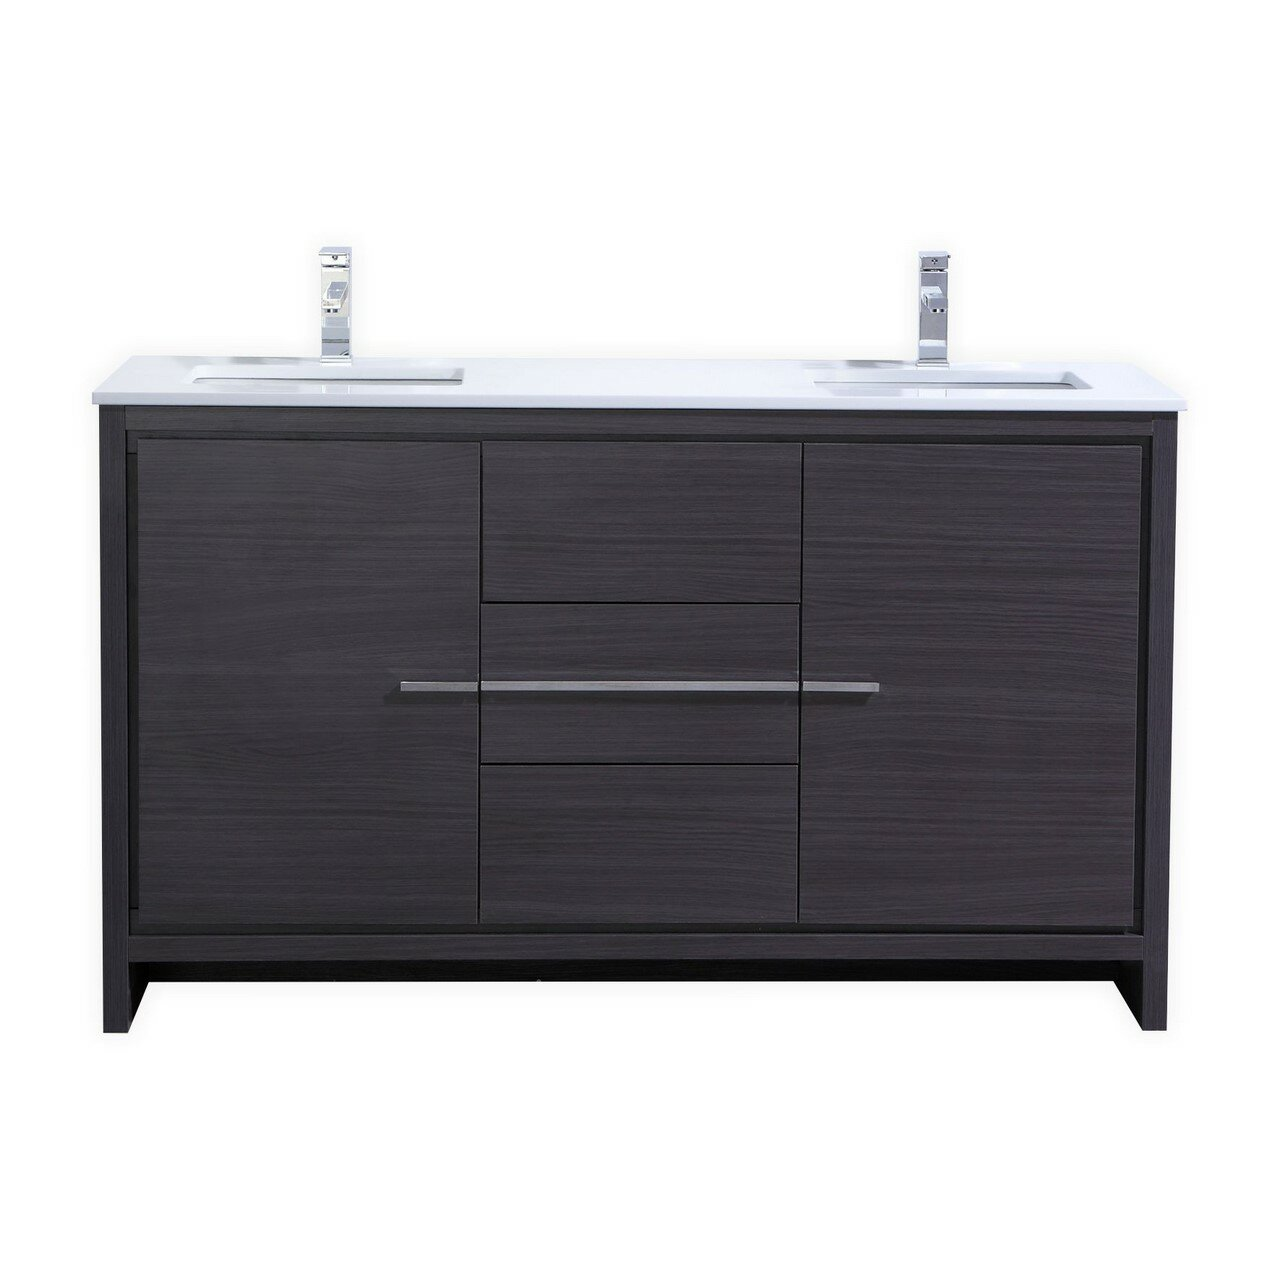 Kube bath dolce 60 double sink modern bathroom vanity - Contemporary double sink bathroom vanity ...